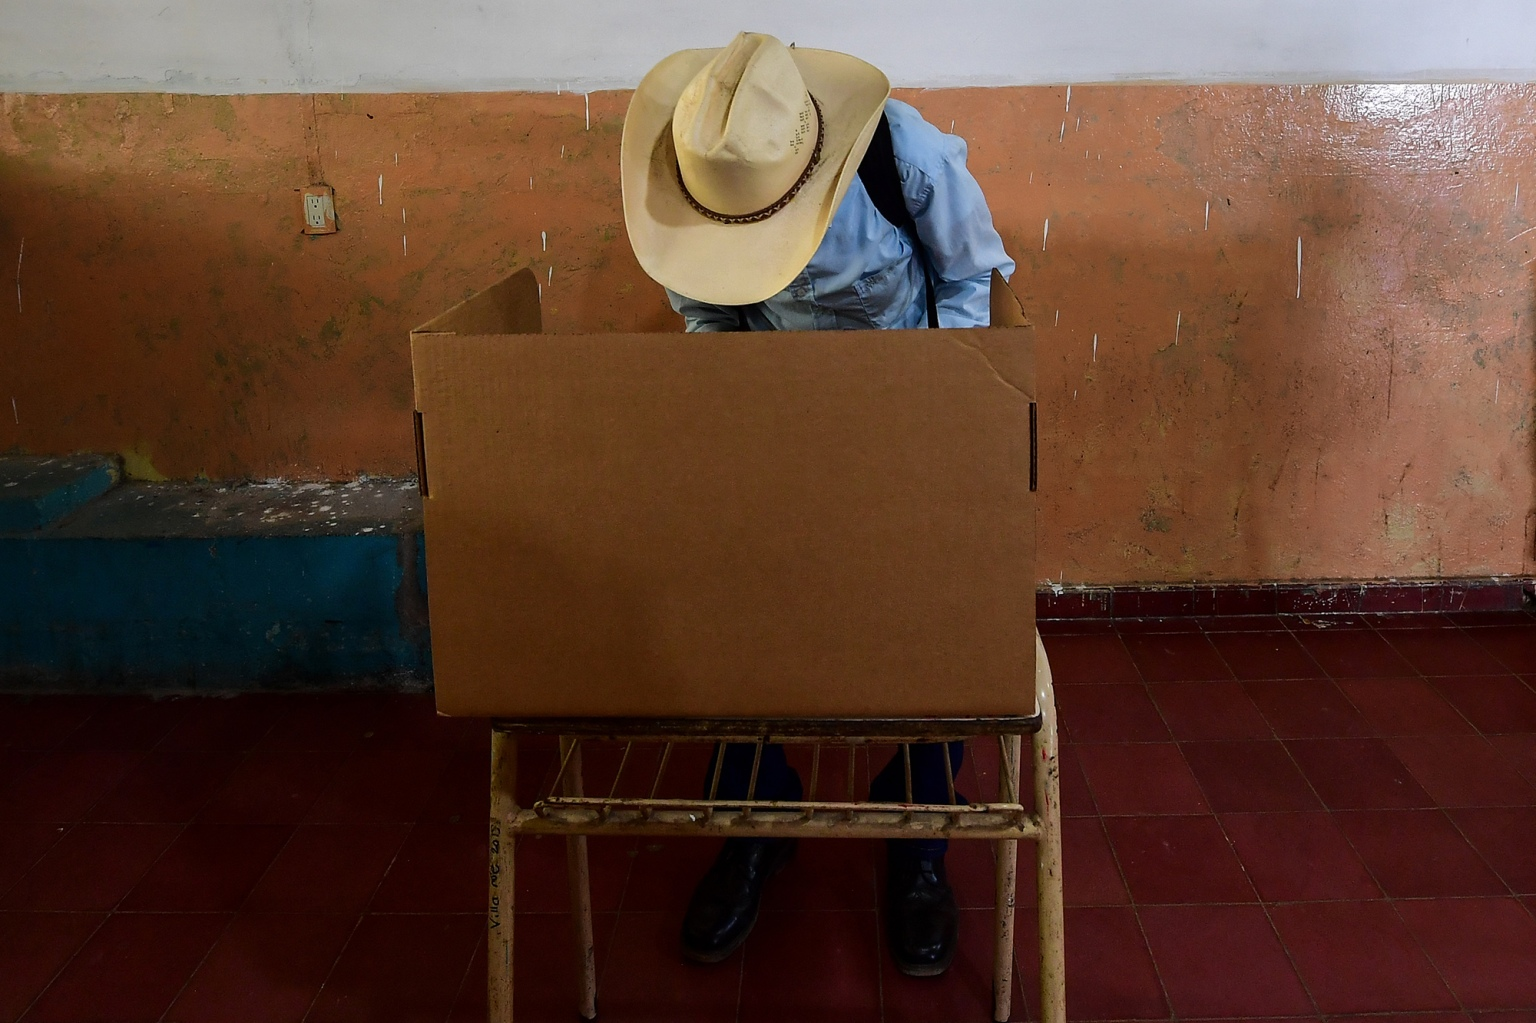 A farmer votes at a polling station in the Bernardino Villamarion School in Panchimalco, during the Salvadorean presidential election, on Feb. 3. (Luis Acosta/AFP/Getty Images)